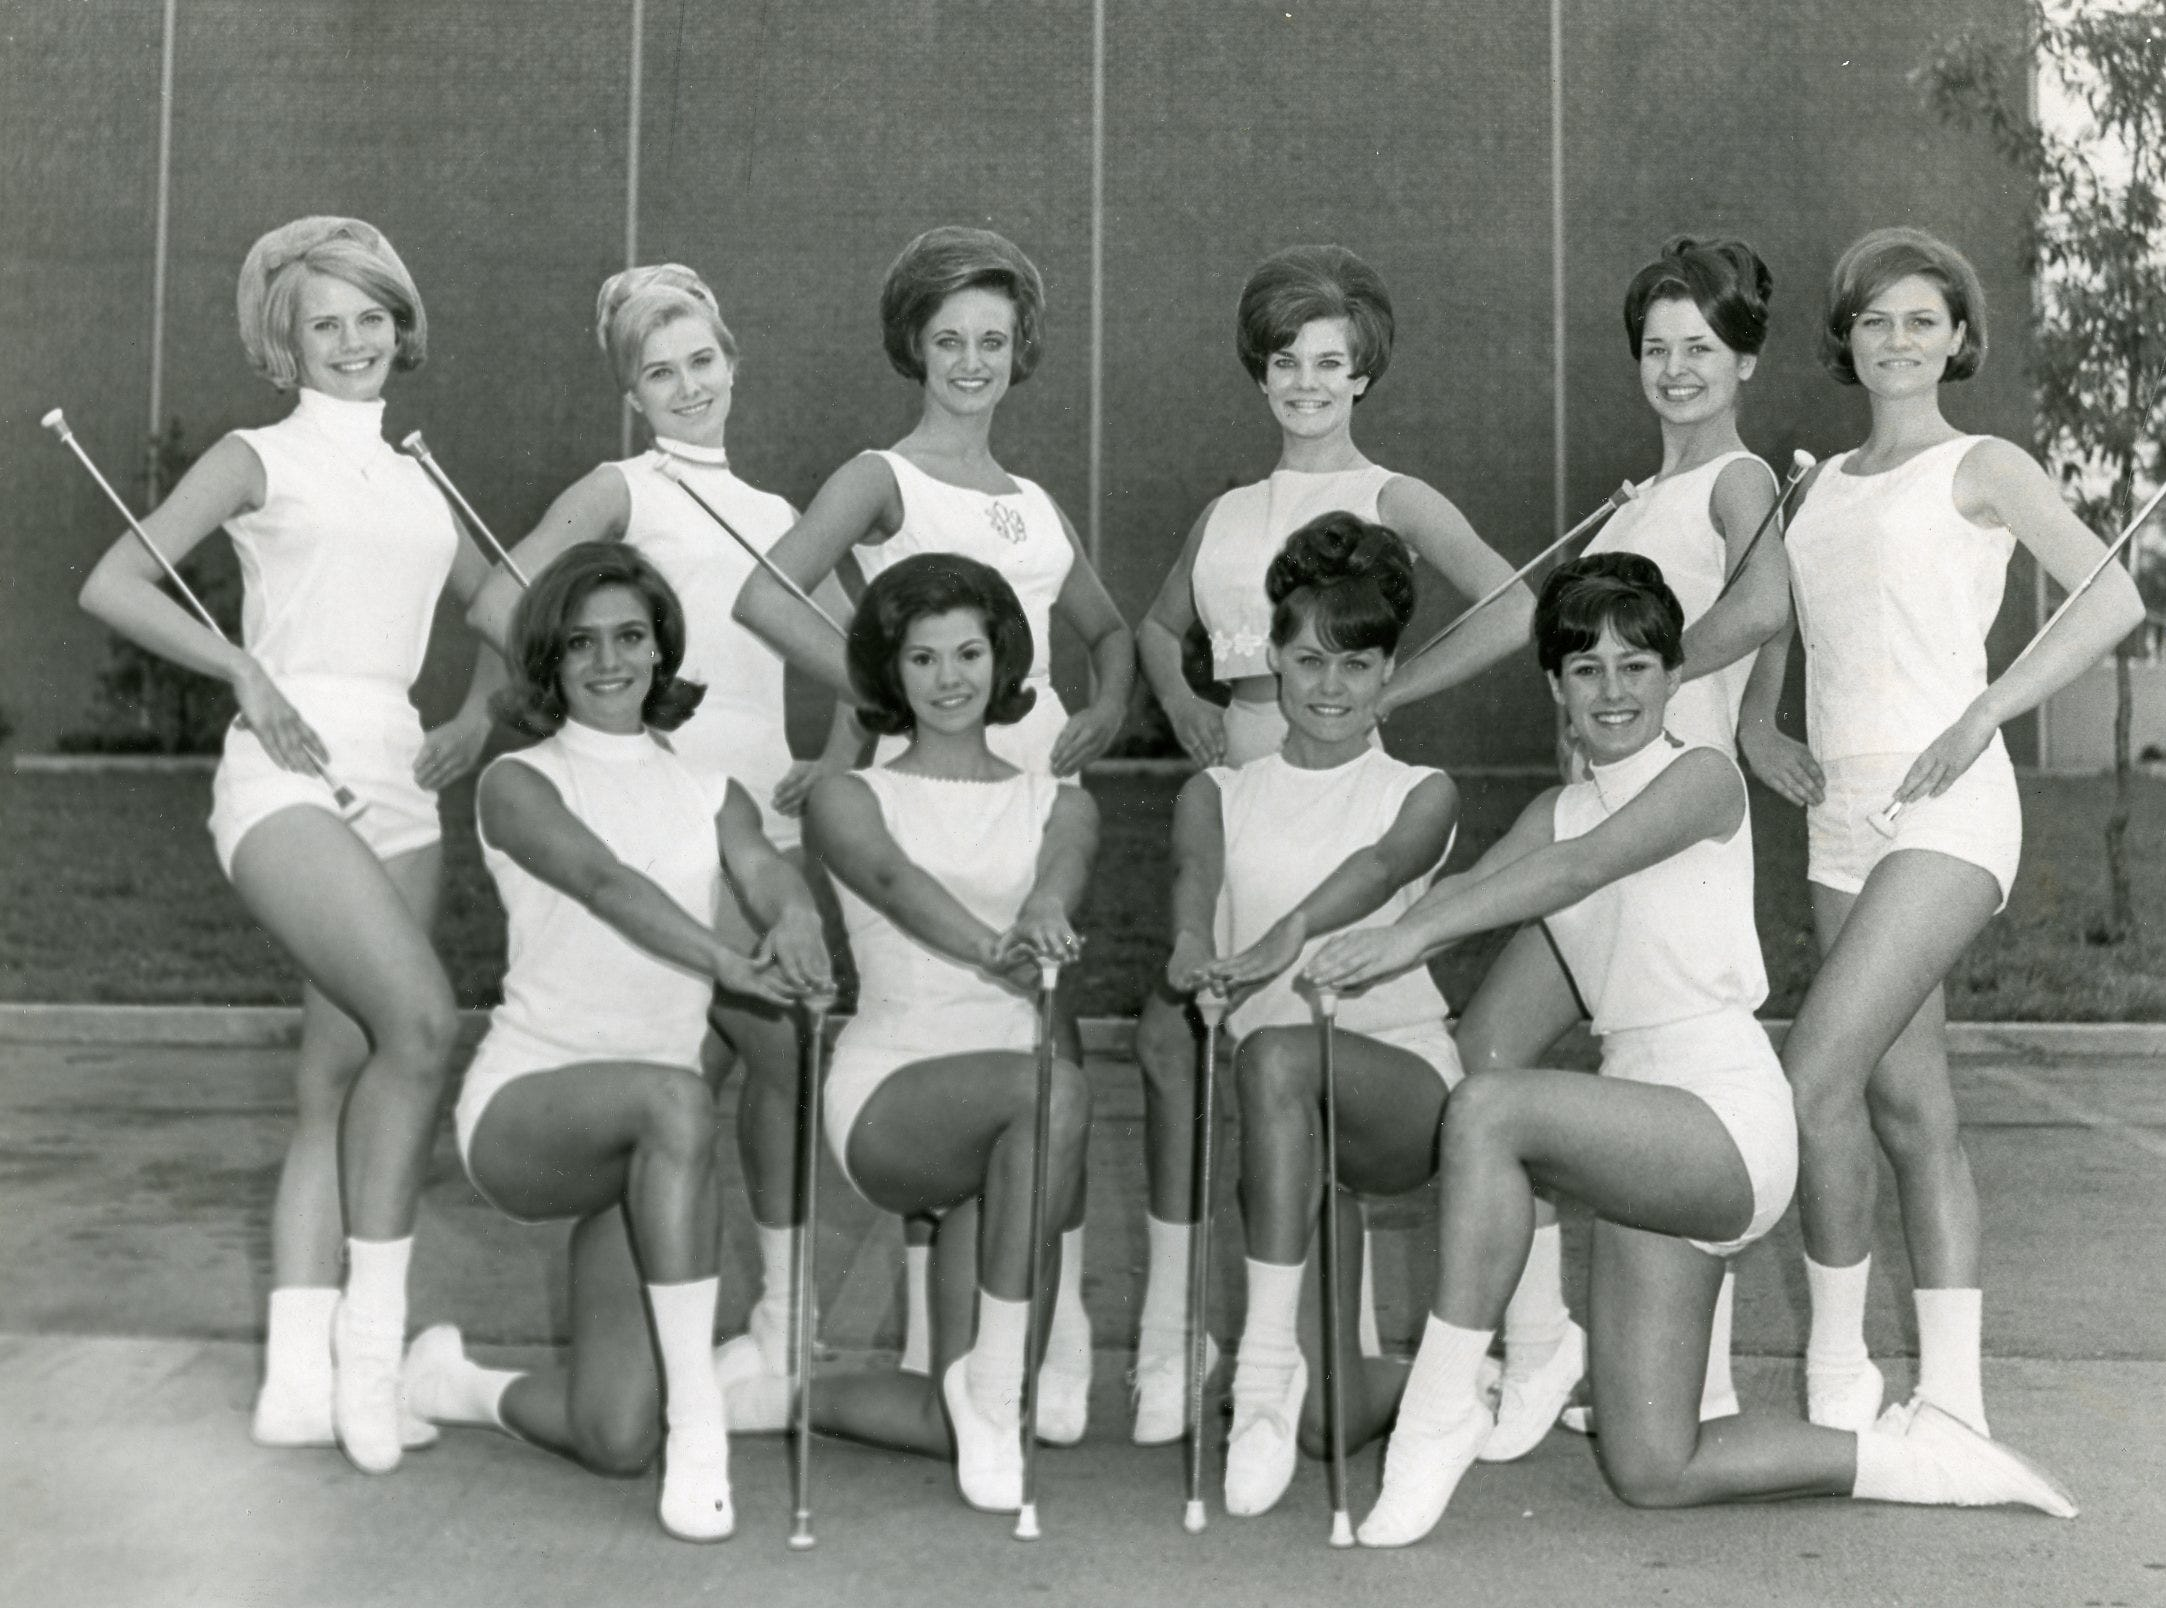 UT majorettes, 1968: (front) Becky Nanney, Janet Guthrie, Kathy Shields, Pete Payne; (back) Mary Luallen, Mary Carolyn Roper, Pam bailey, Connie Phillips, Gail Love and Kathy Pattison.